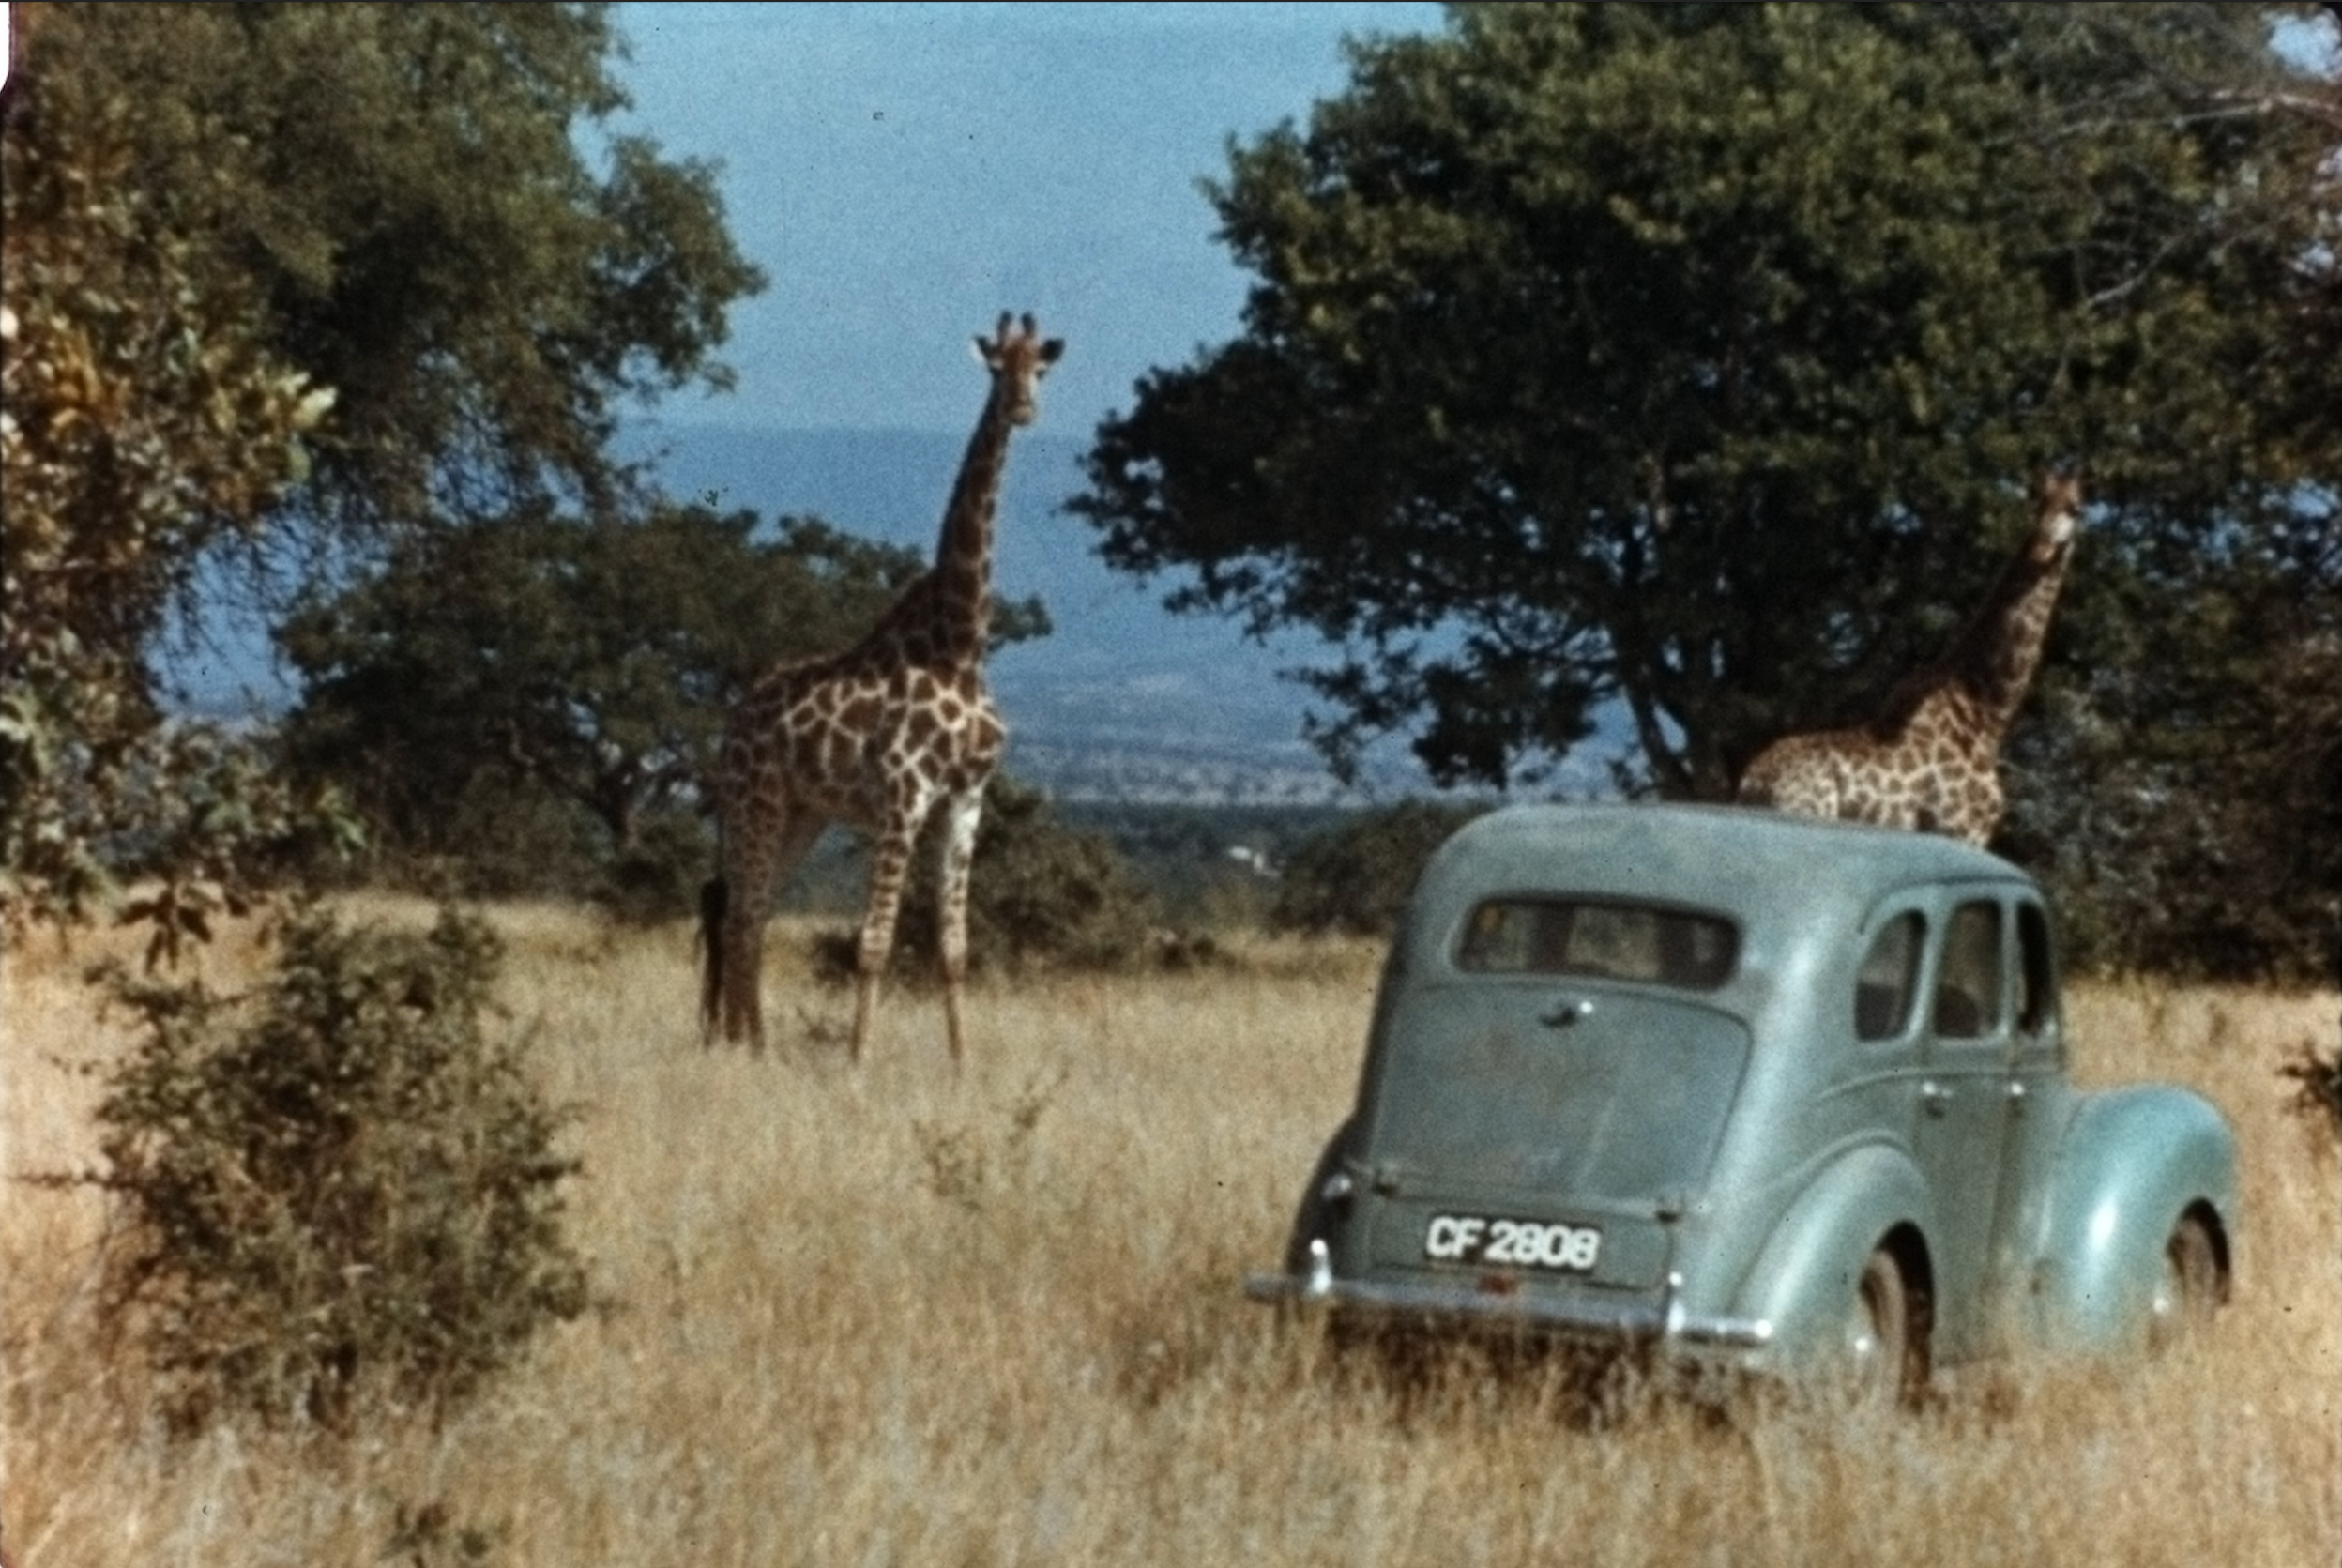 Giraffes and 1950s car in savannah.